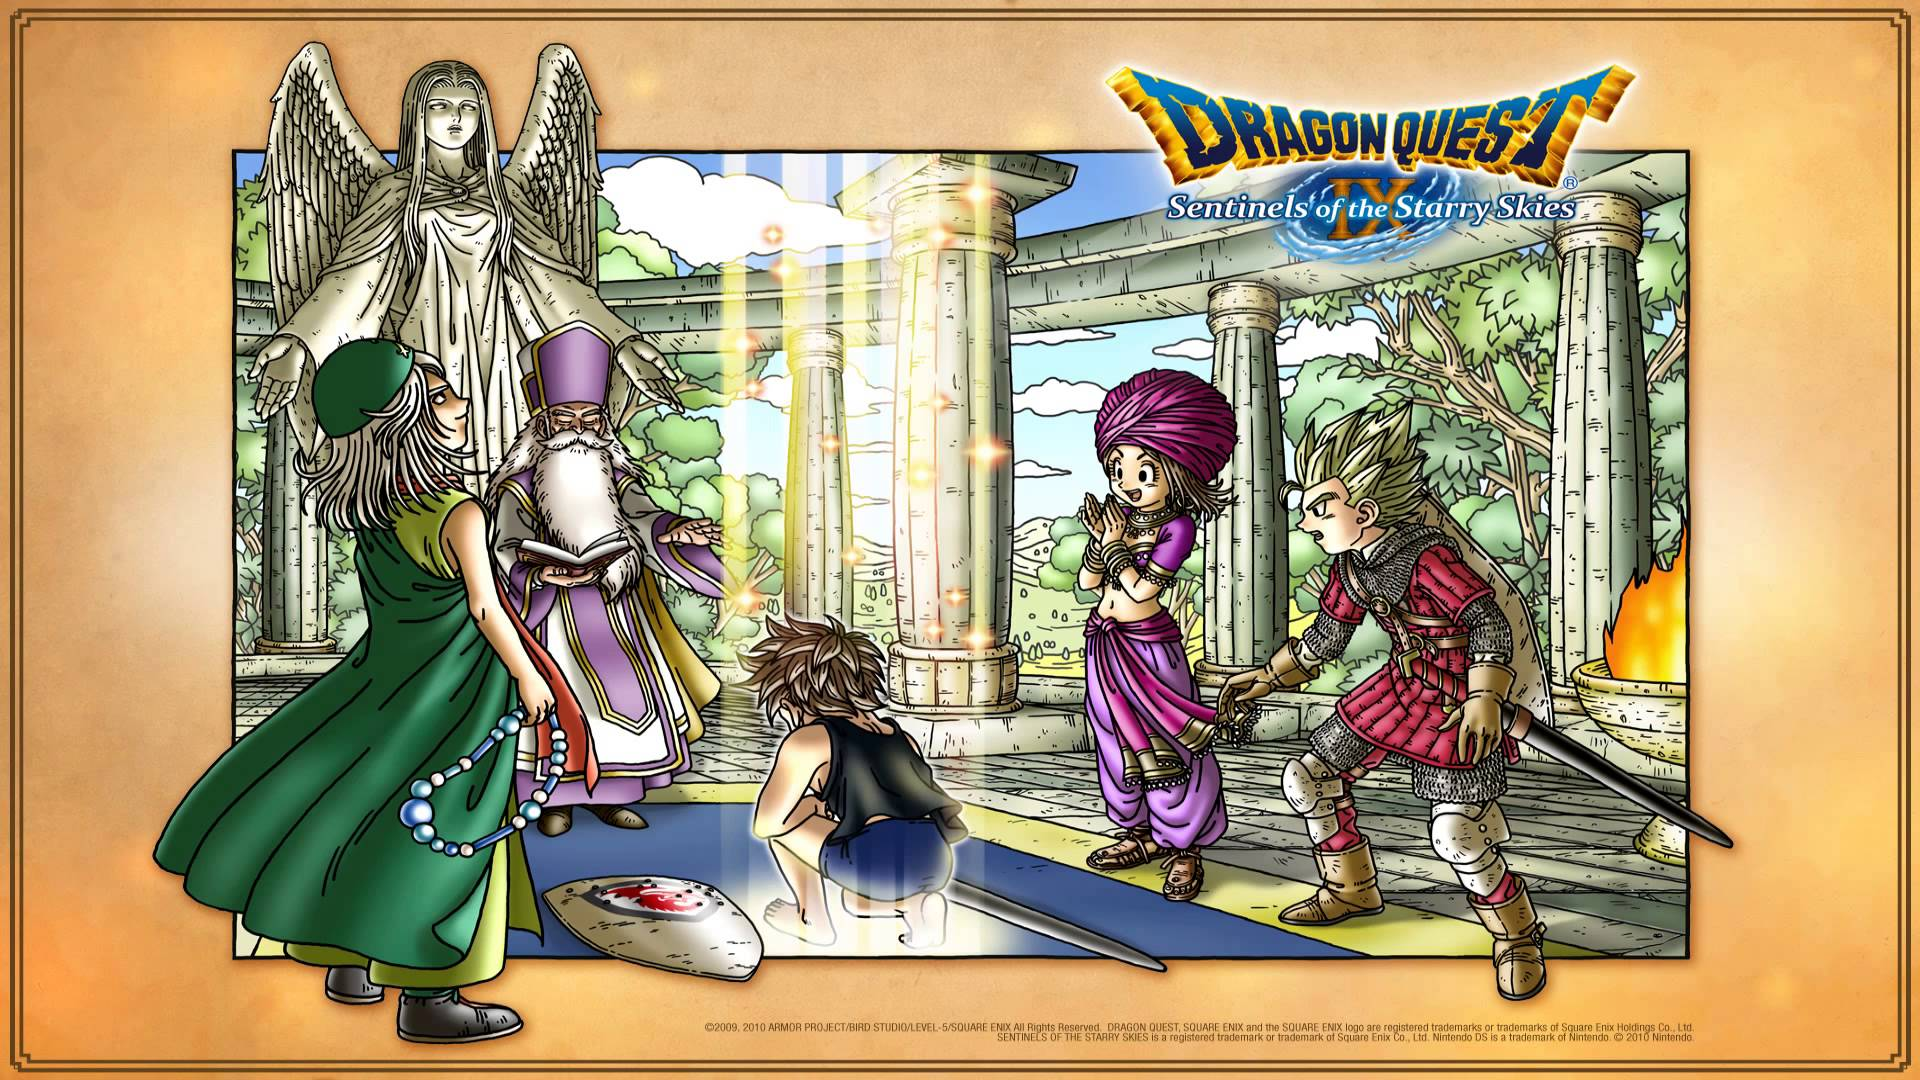 dragon quest 9, video game remasters